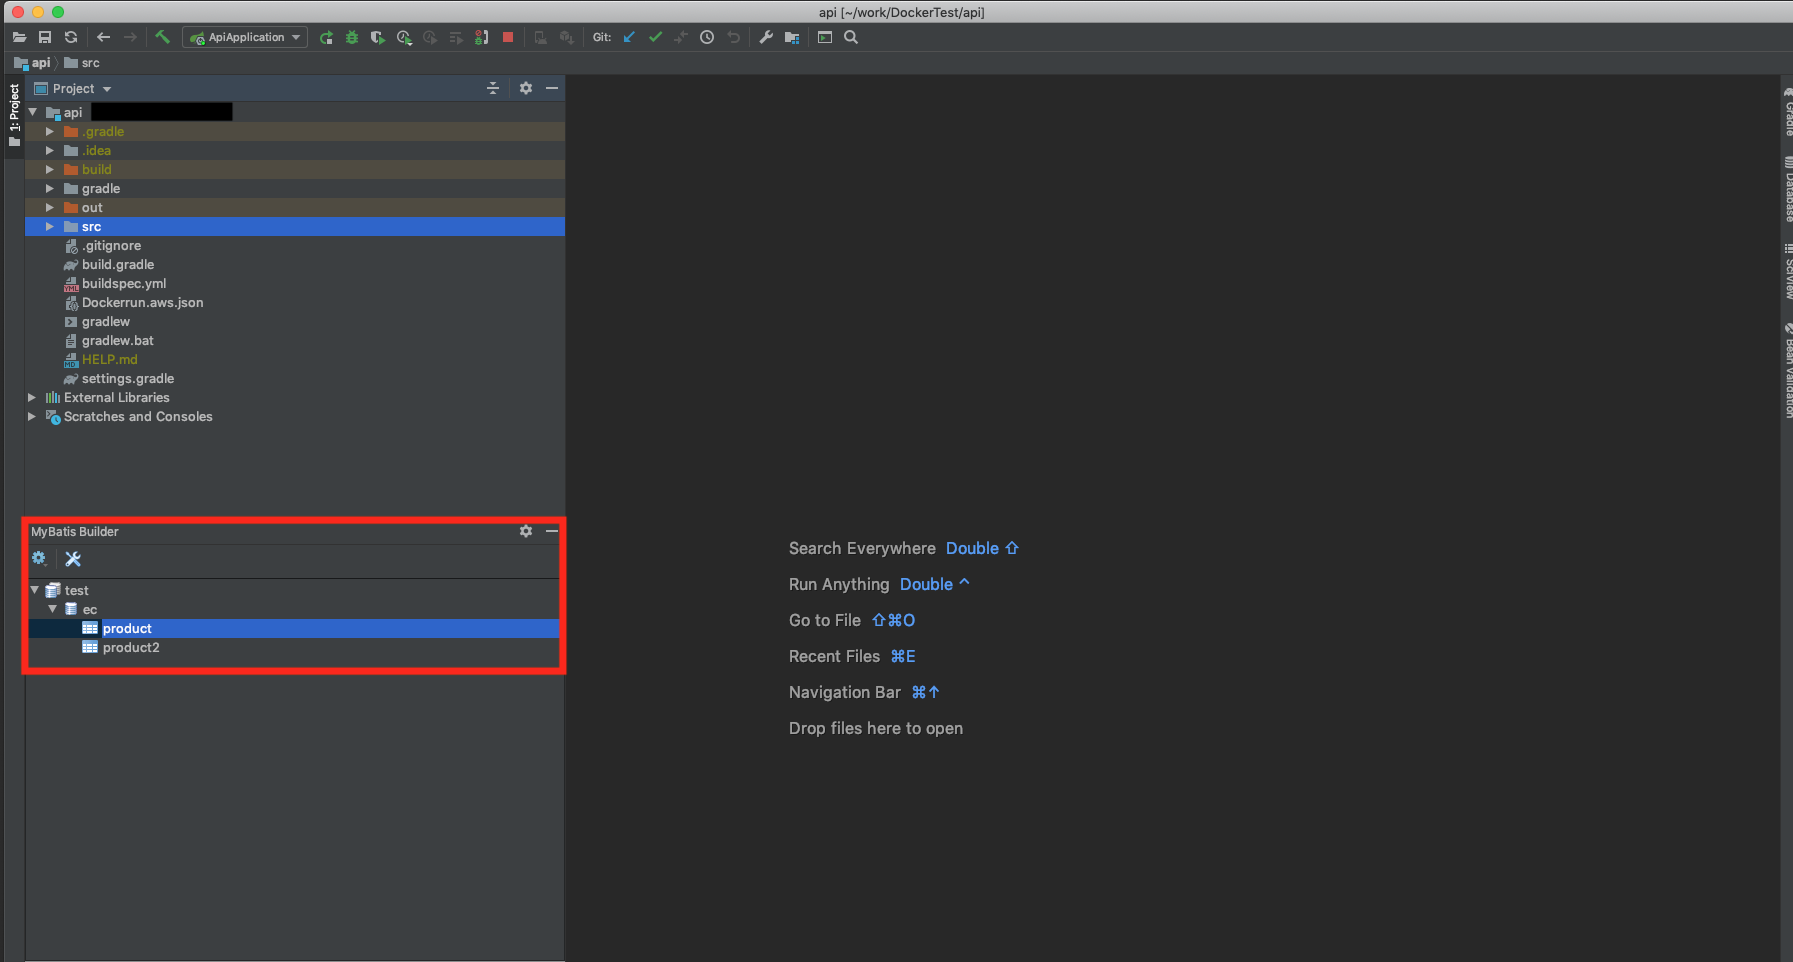 intelliJ mybatis generator plugin インストール